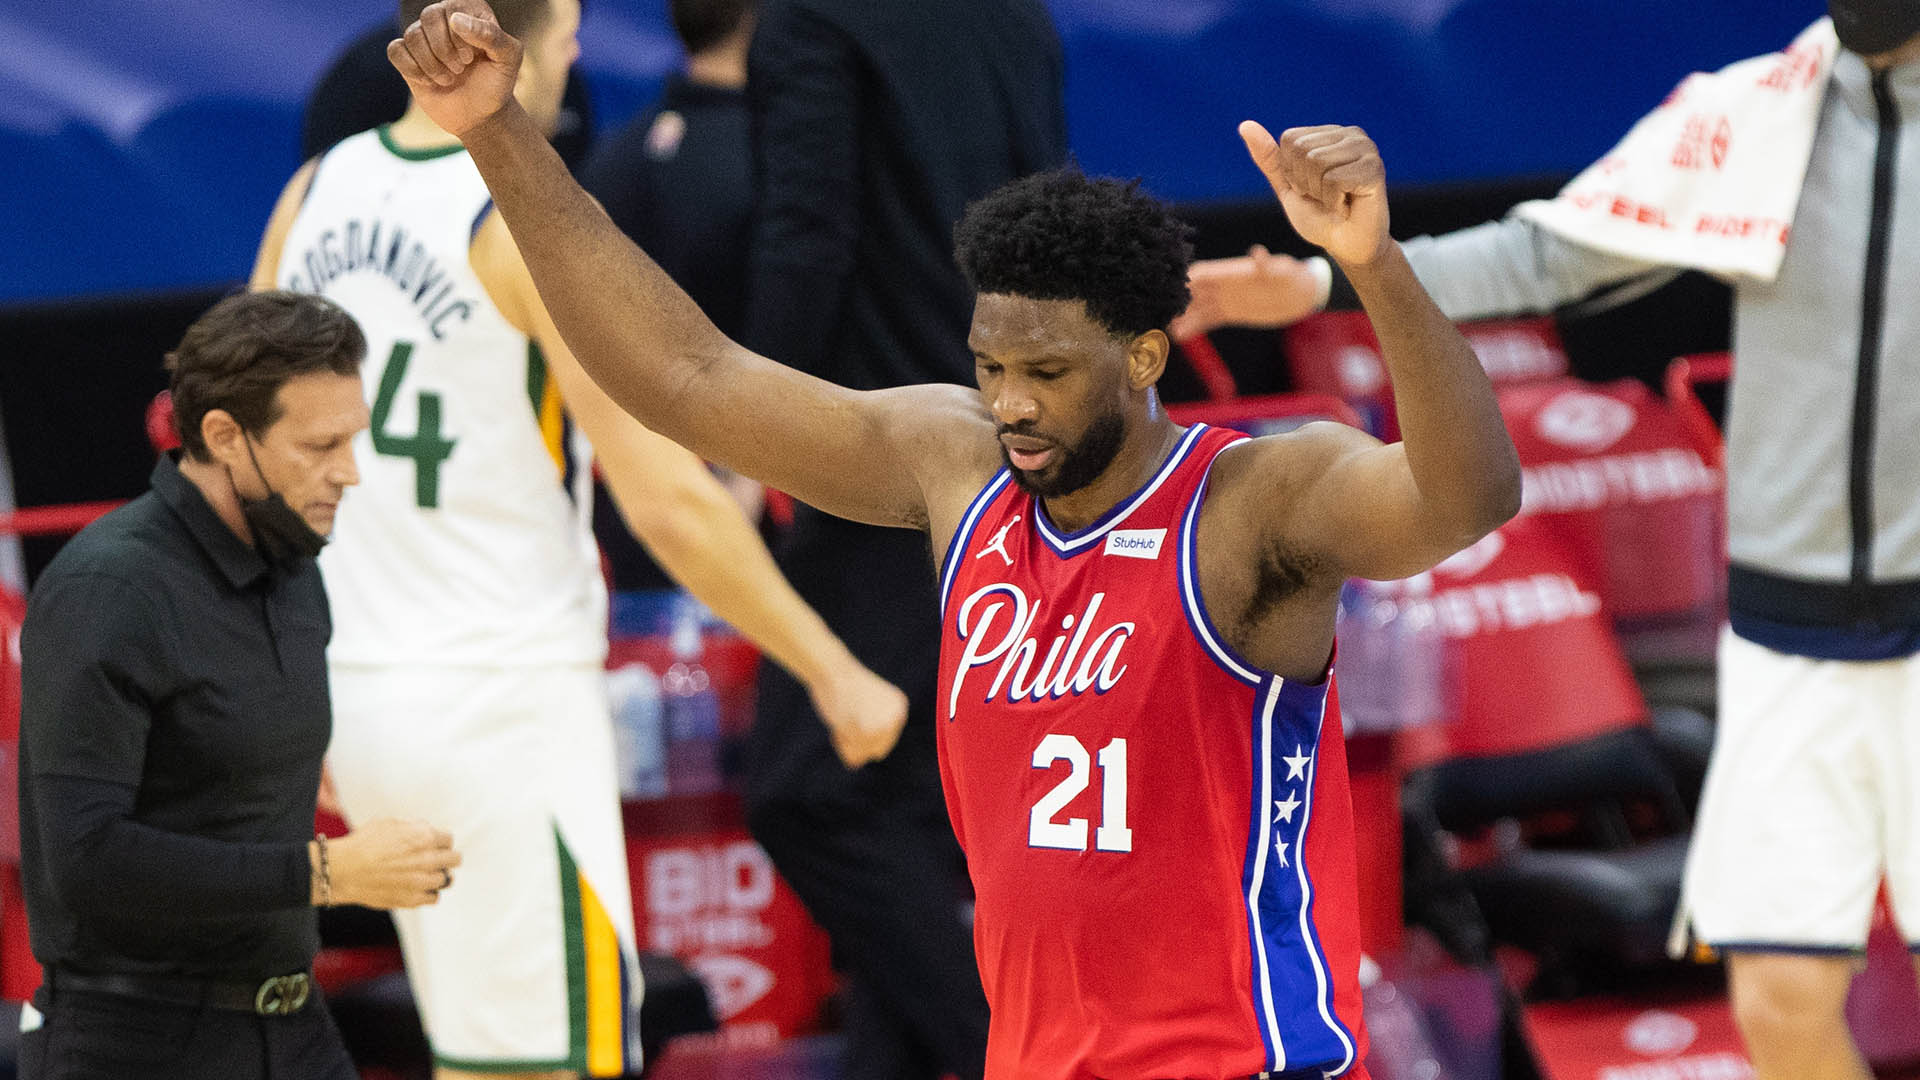 Full Focus: Embiid lights up Jazz in OT win